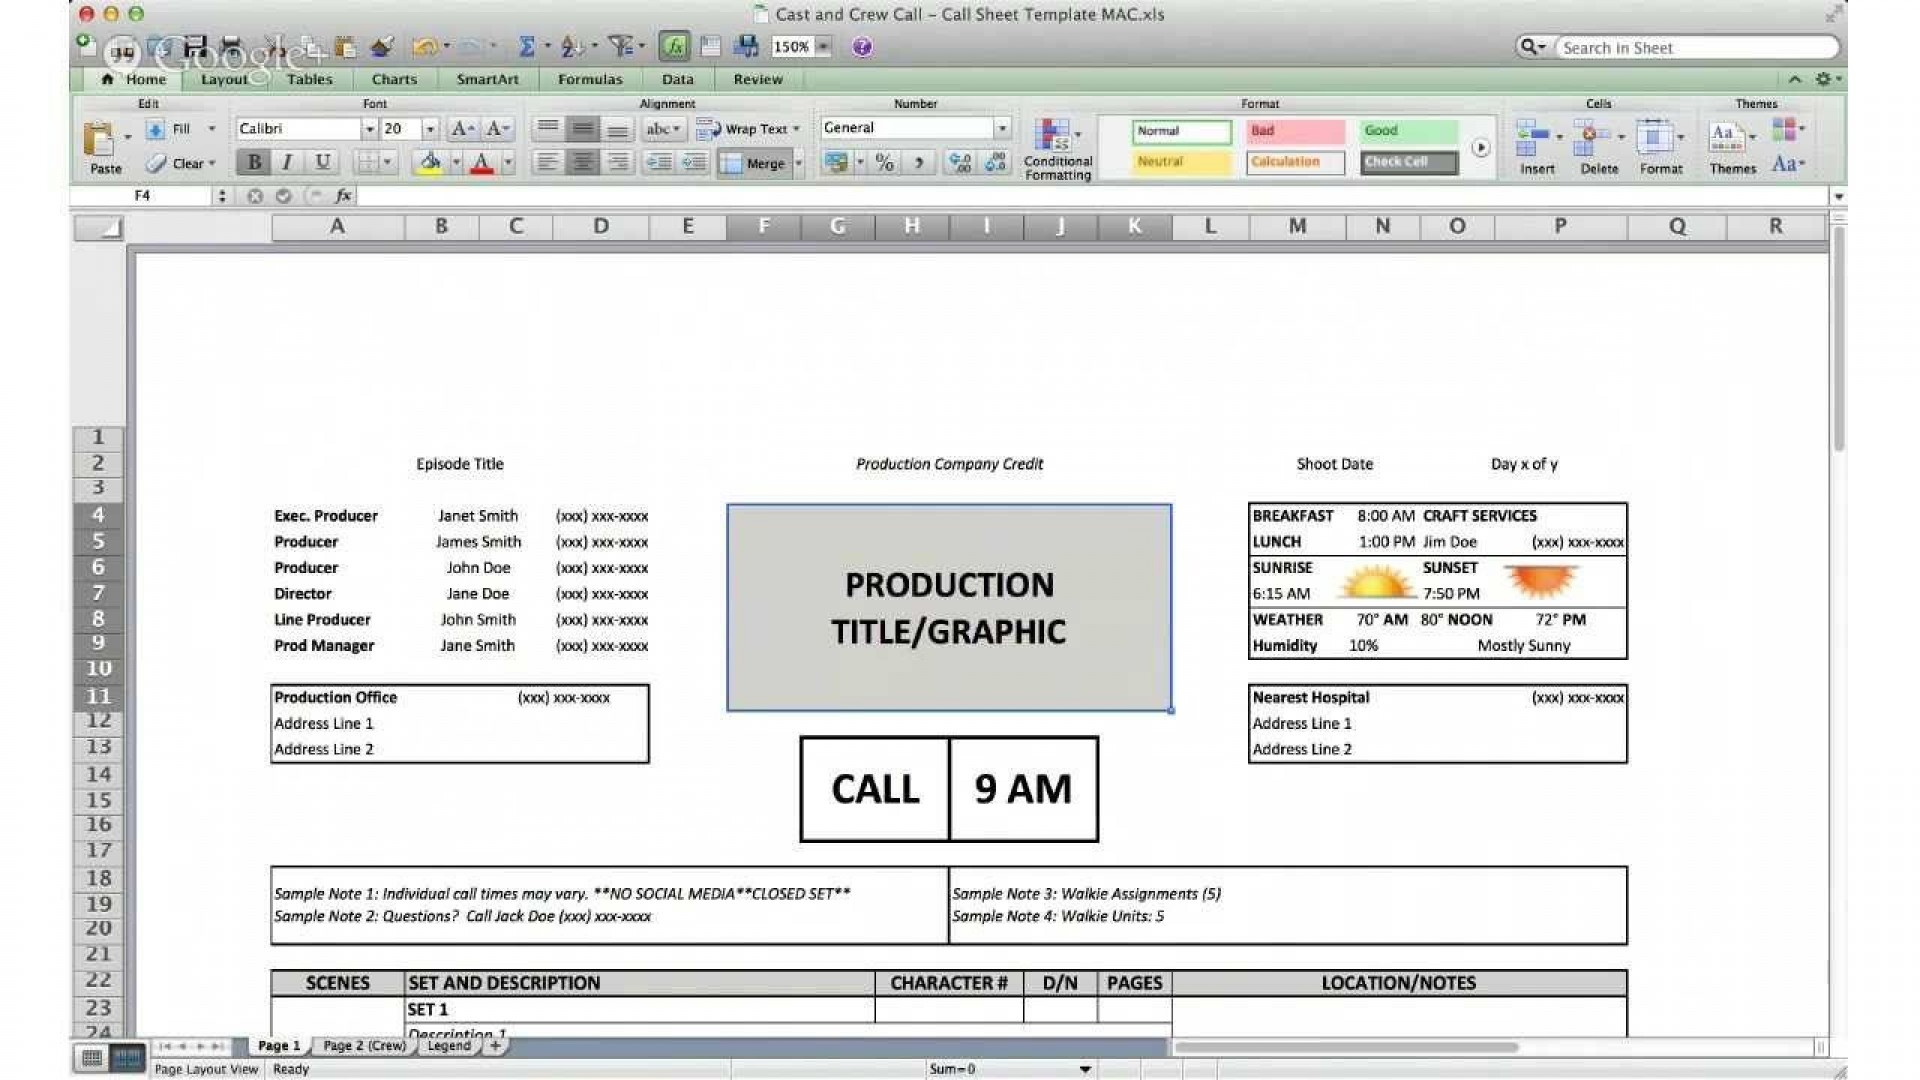 001 Breathtaking Film Call Sheet Template Download Design 1920